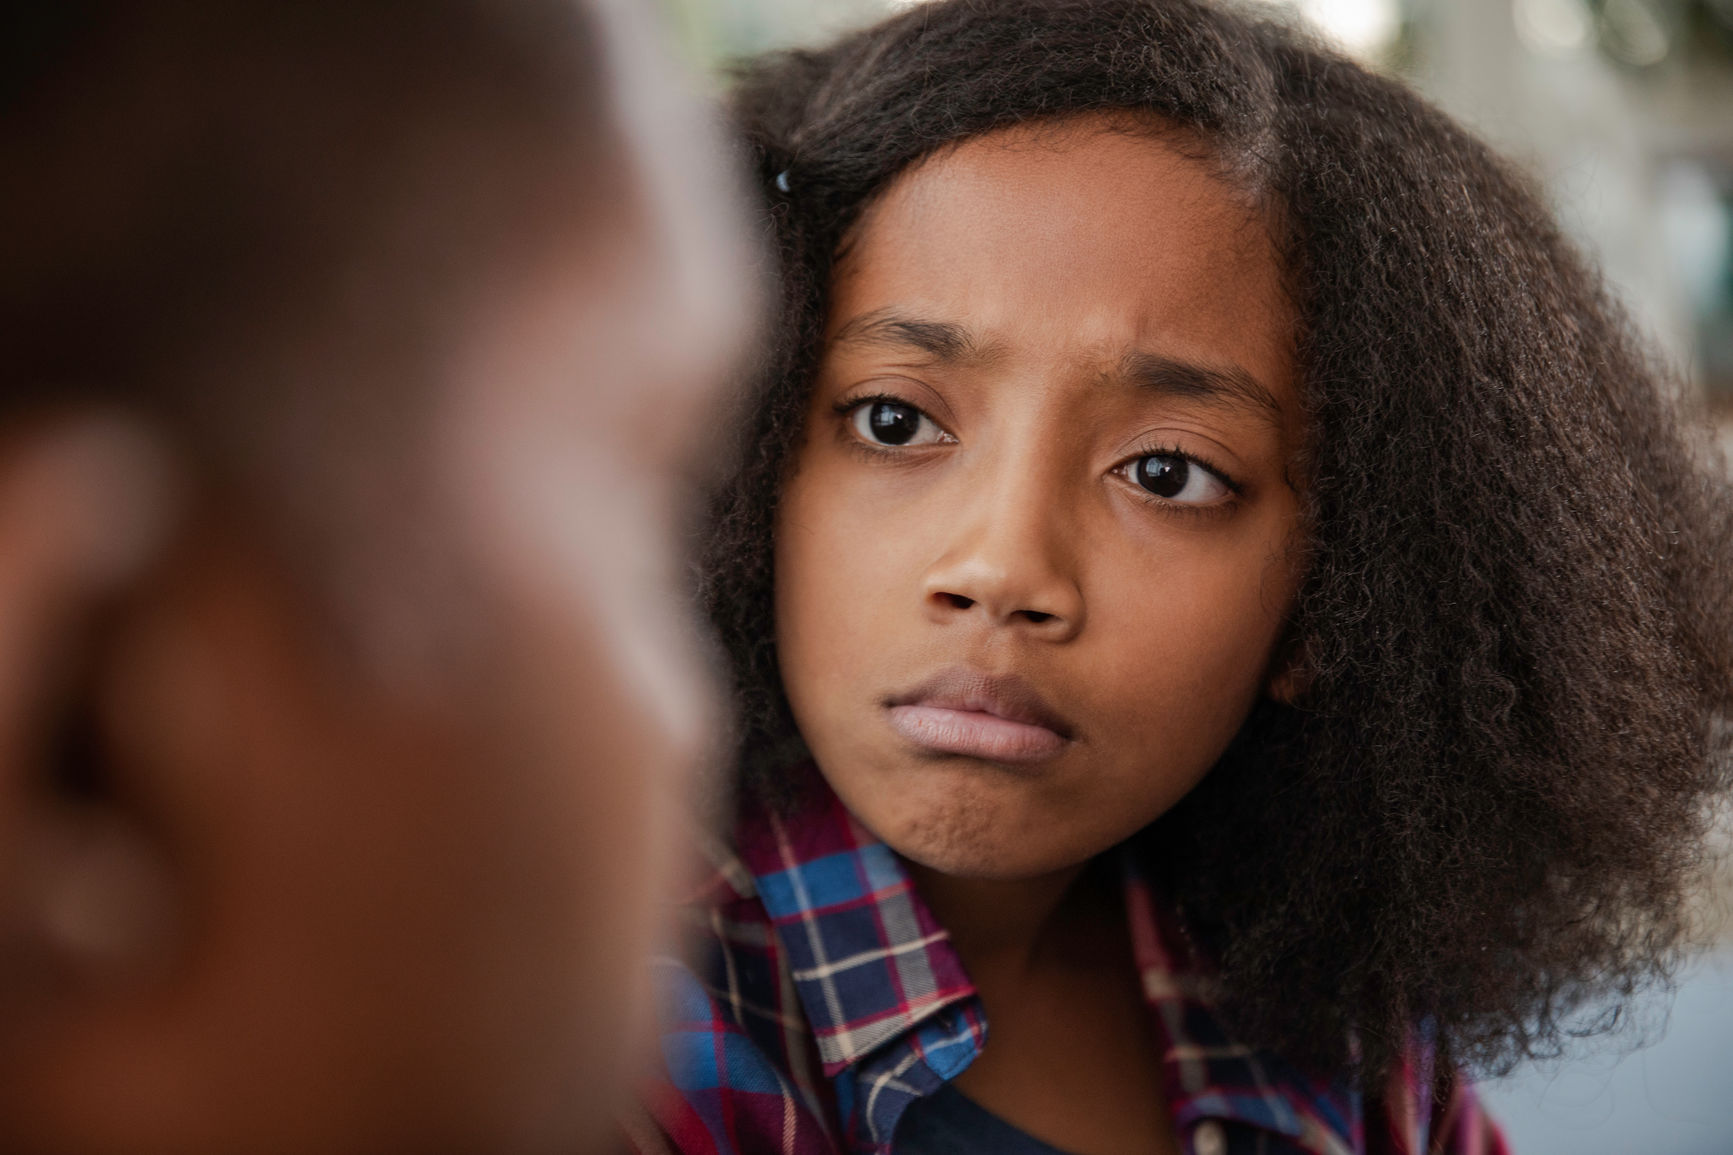 What Its Like To Be Labeled A Rude Black Girl